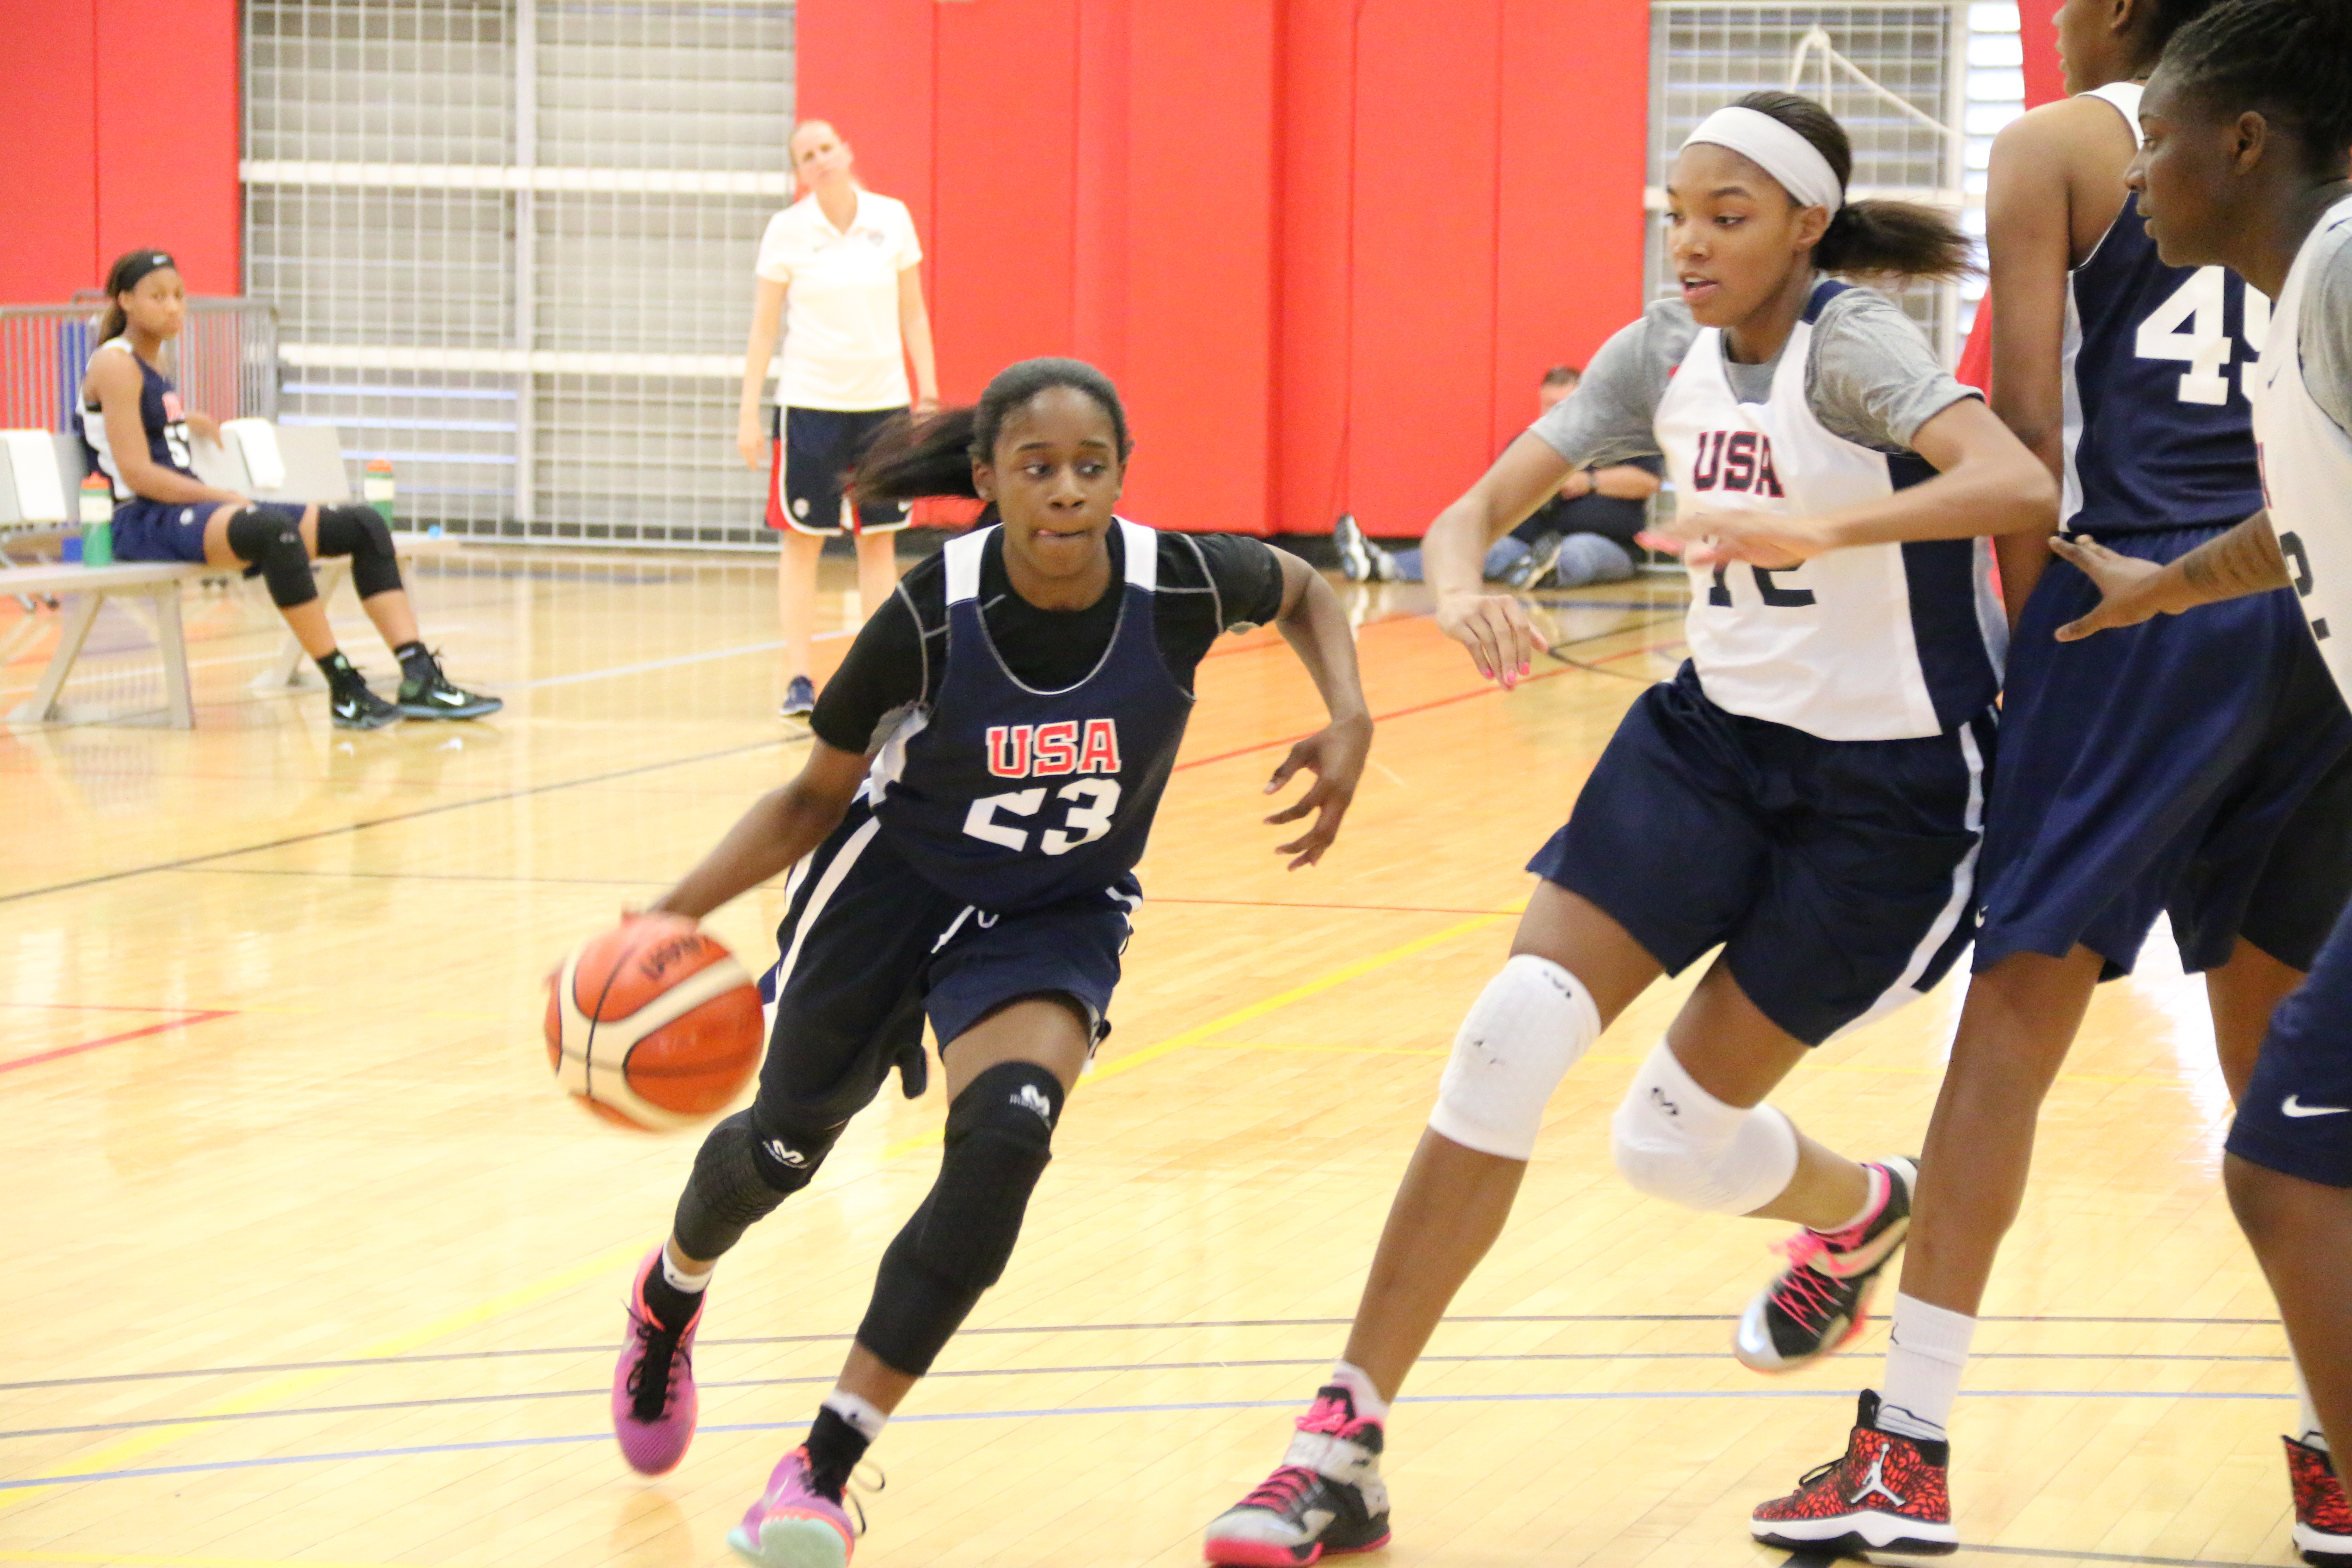 Chasity Patterson has given a verbal commitment to Texas (Photo: USA Basketball)